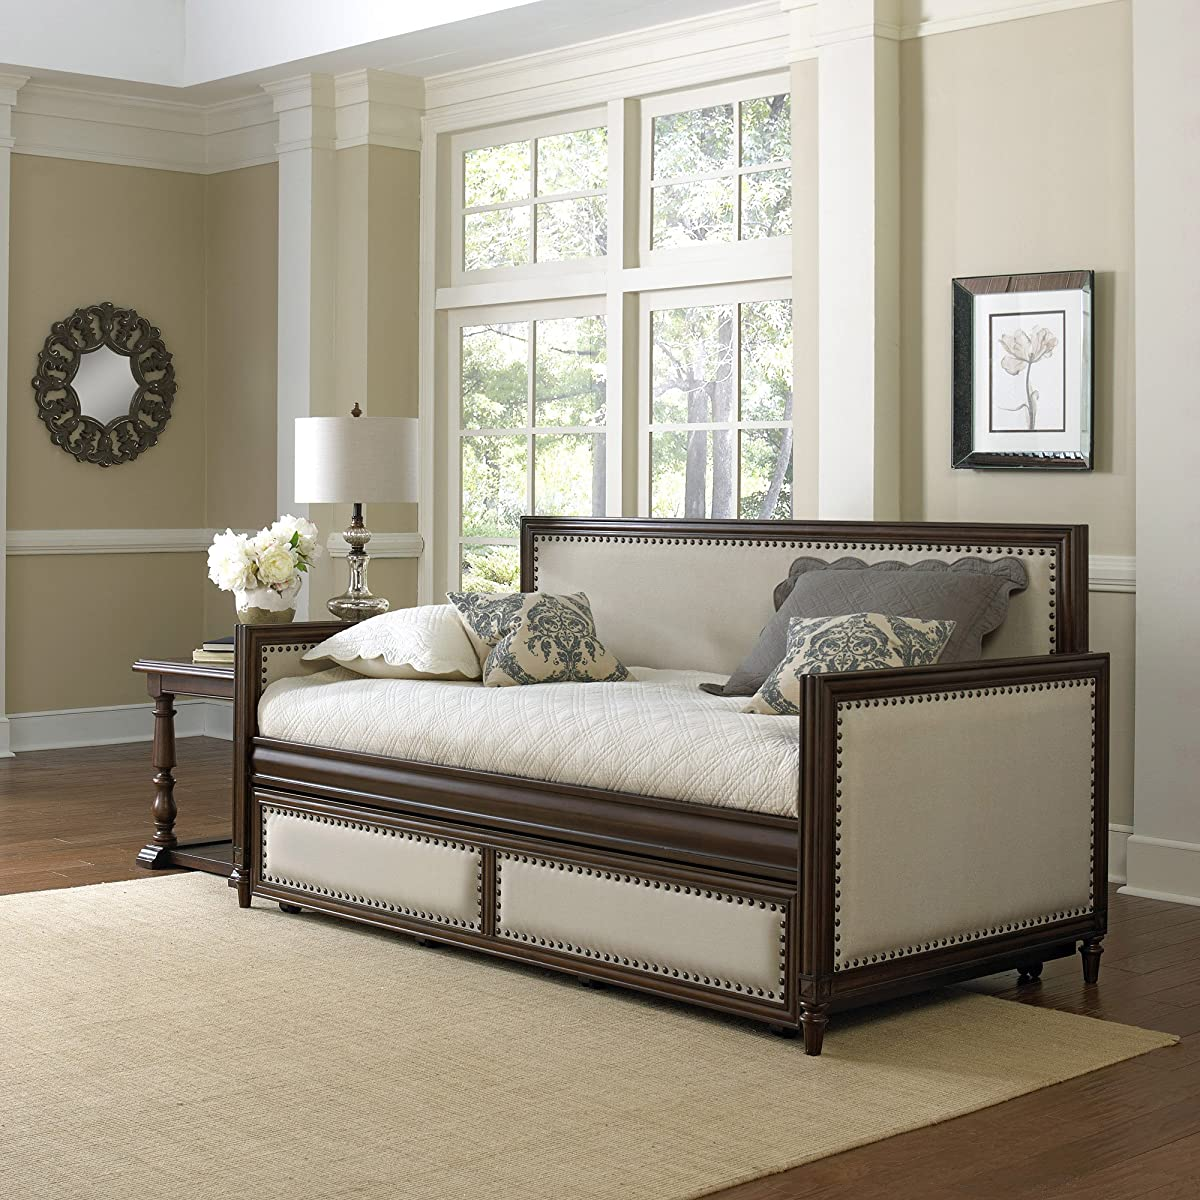 Fashion Bed Group Grandover Wood Daybed with Cream Upholstered Panels and Roll Out Trundle Drawer, Espresso Finish, Twin